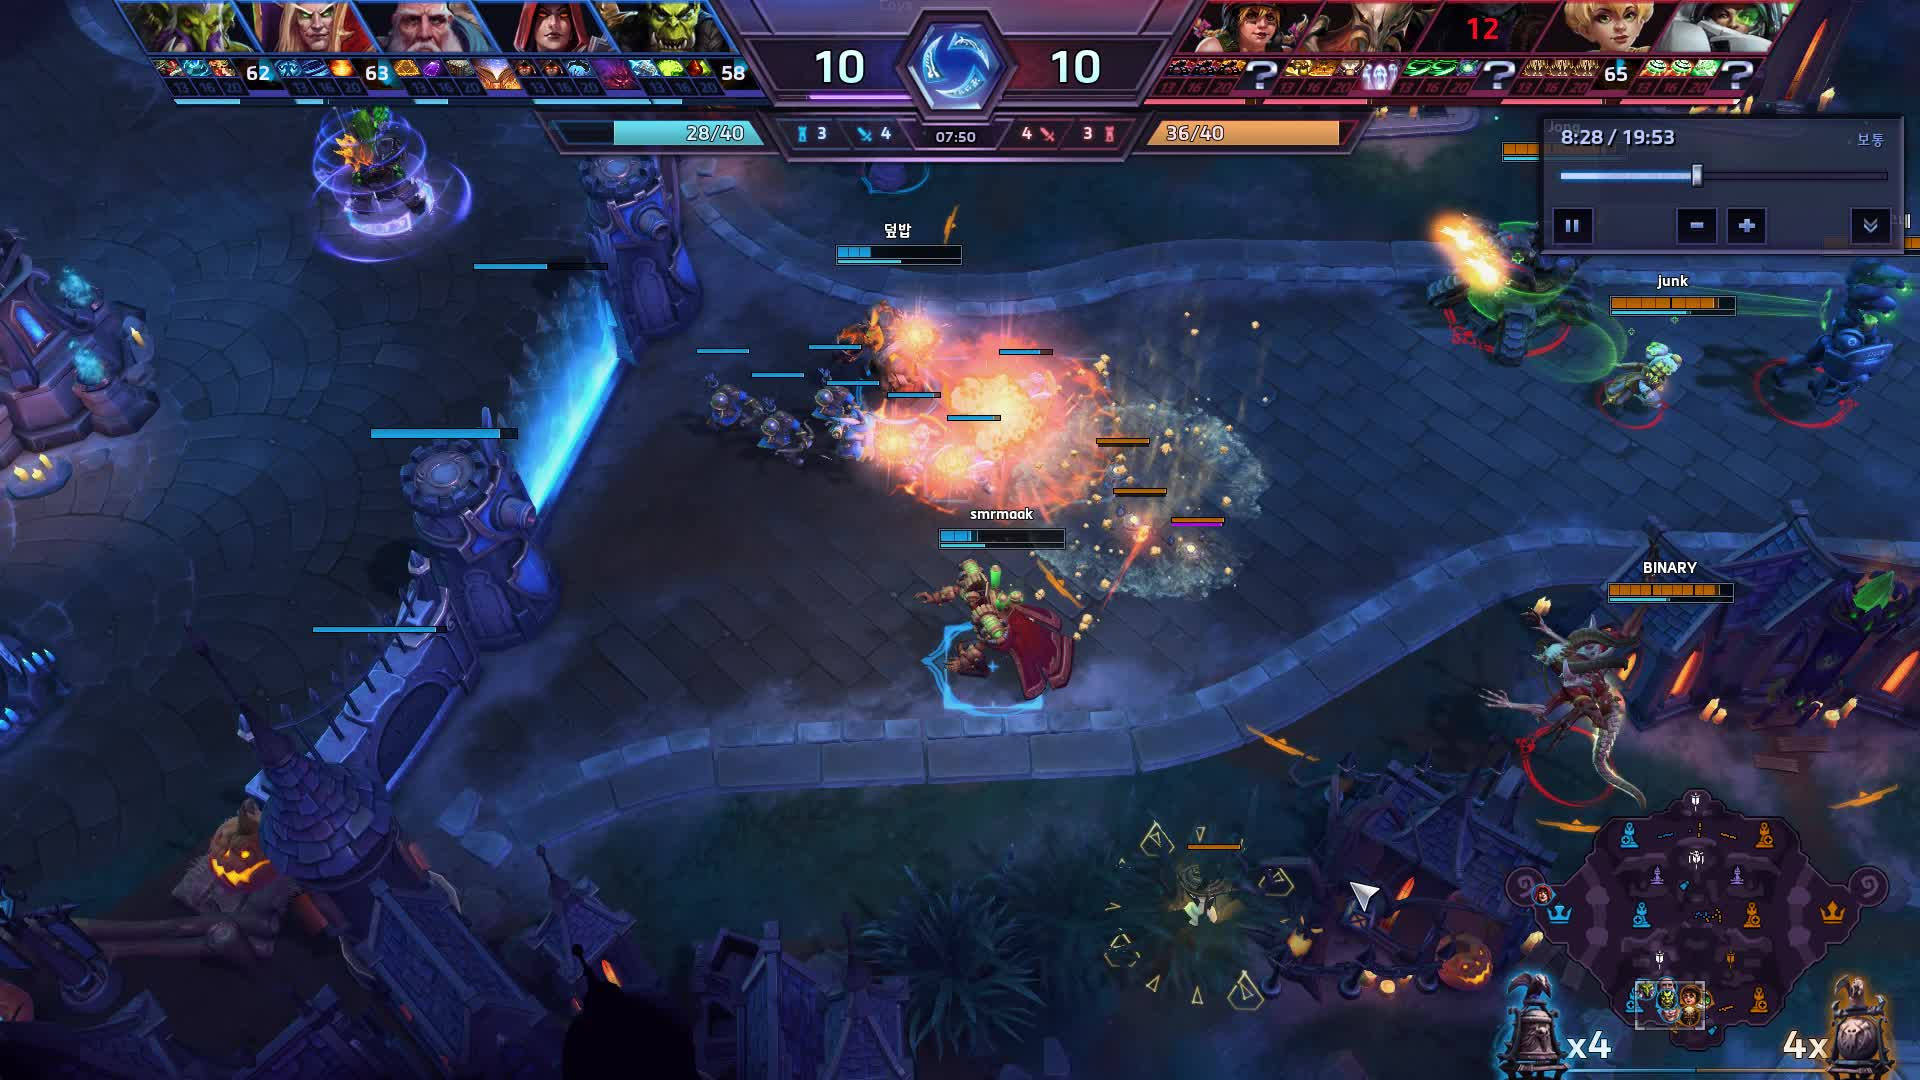 heroesofthestorm, Heroes of the Storm 2018.11.10 - 23.30.22.02 GIFs